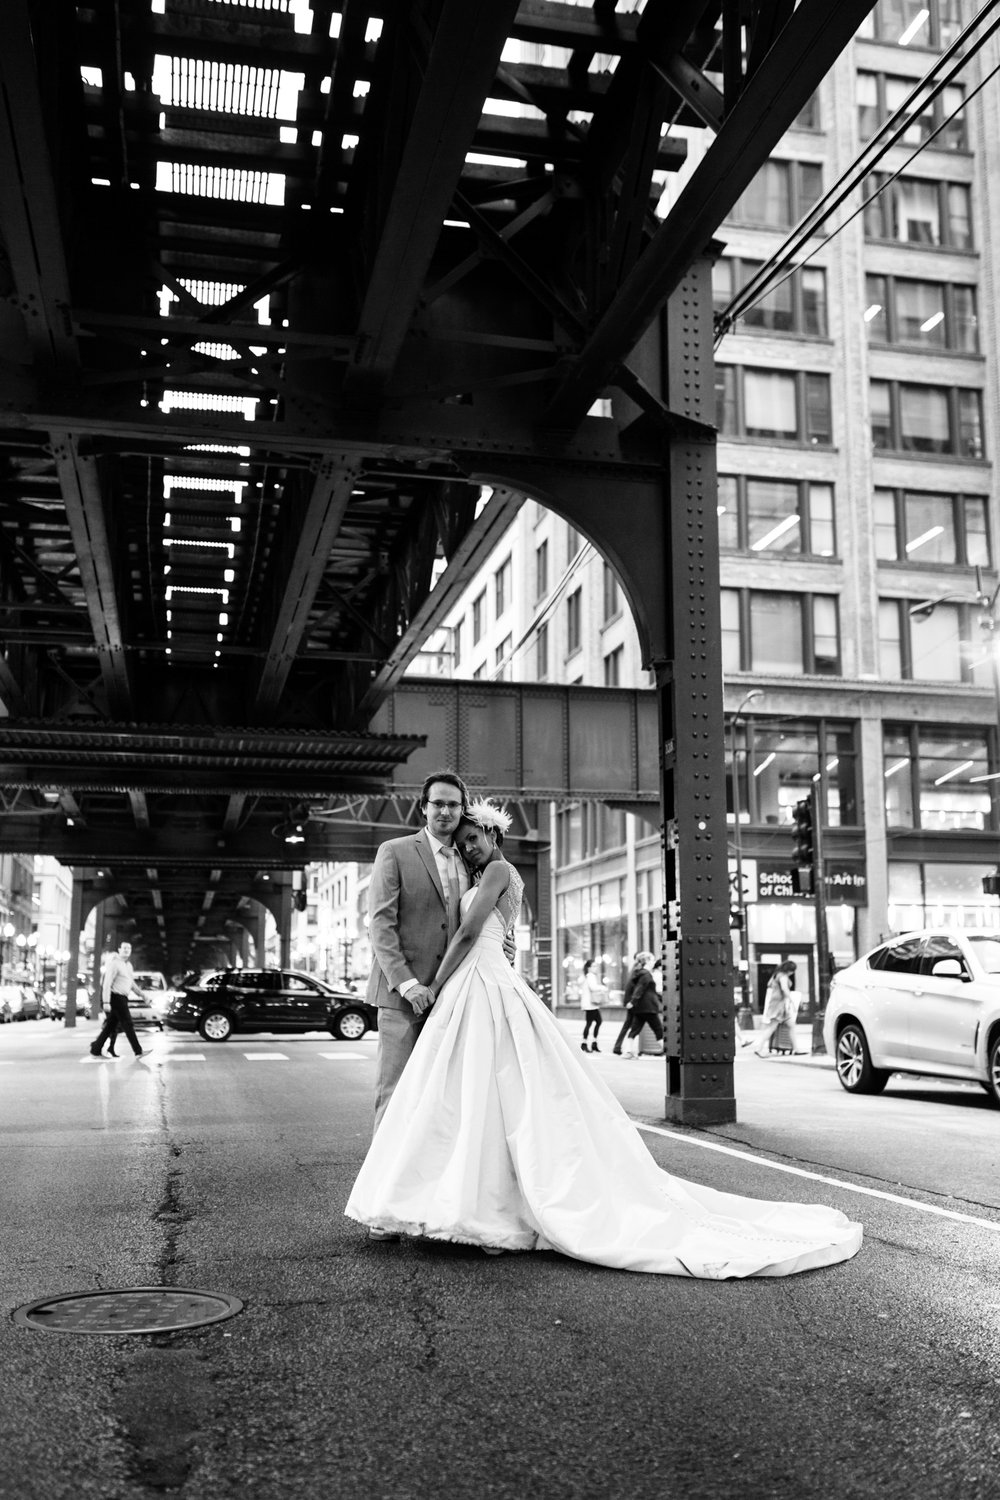 Portrait of bride and groom under L train tracks in Chicago